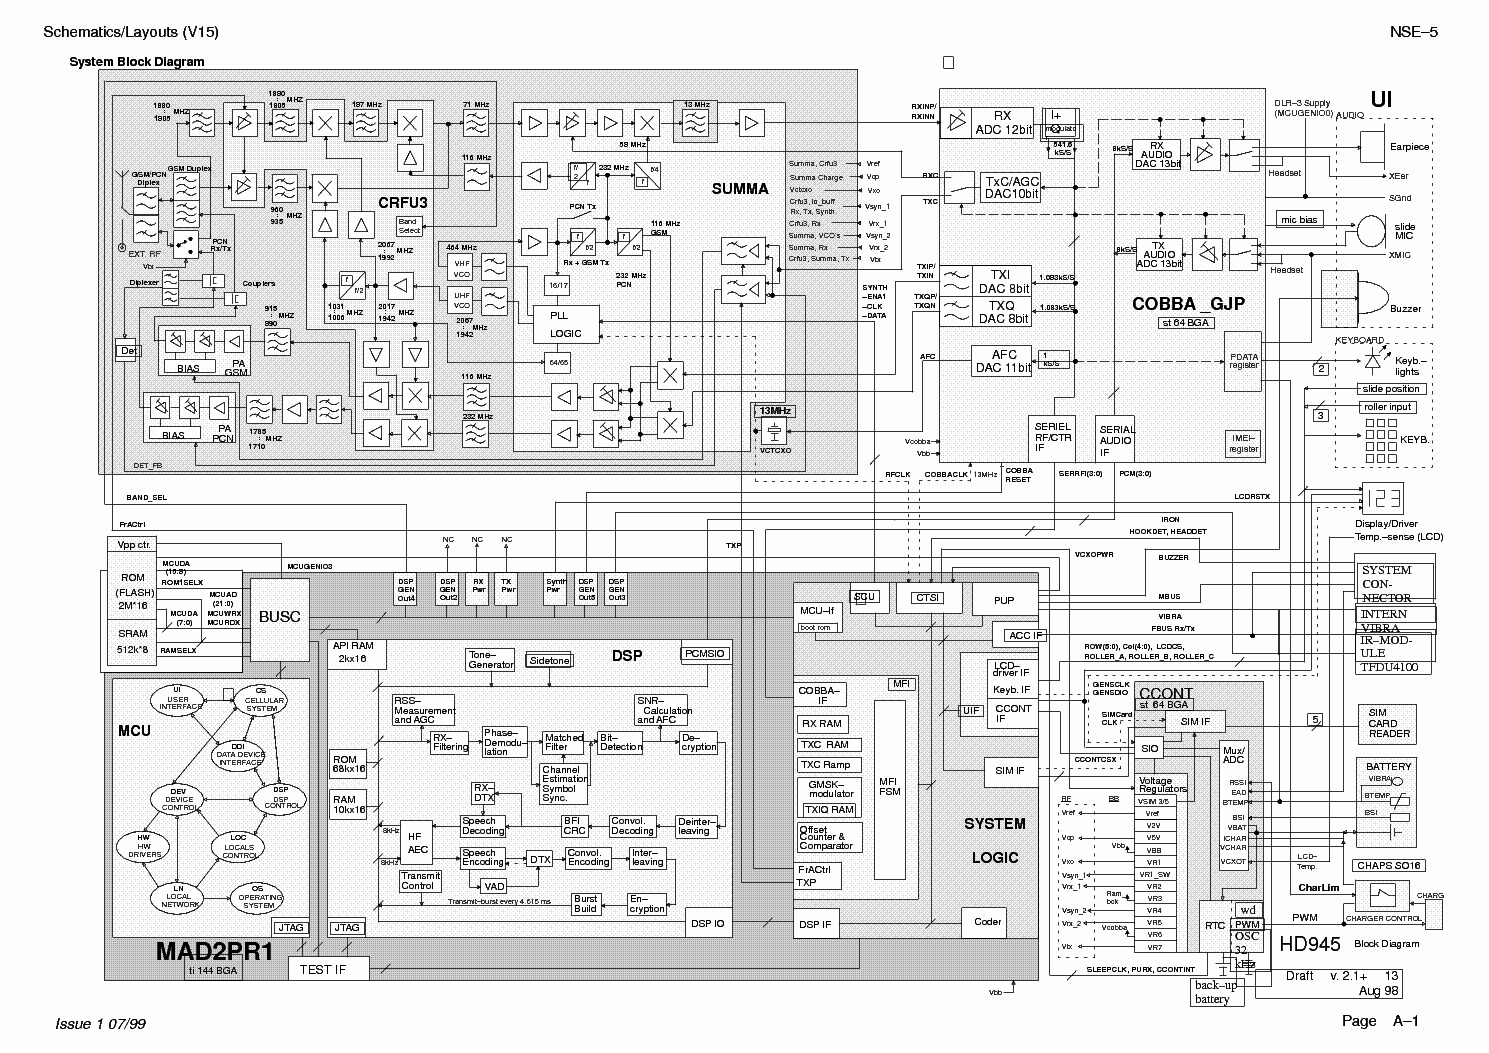 Nokia 1280 Schematic Diagram Pdf Free Download Example » PNG ... on free nashville downloads, free visualization downloads, free cell downloads, free map downloads, free drawing downloads, free chart downloads, free model downloads, free hardware downloads, free audio downloads, free infographic downloads, free samsung downloads, free tool downloads, free user guide downloads, free report downloads, free cad downloads, free design downloads, free timeline downloads, free digital downloads, free symbol downloads,